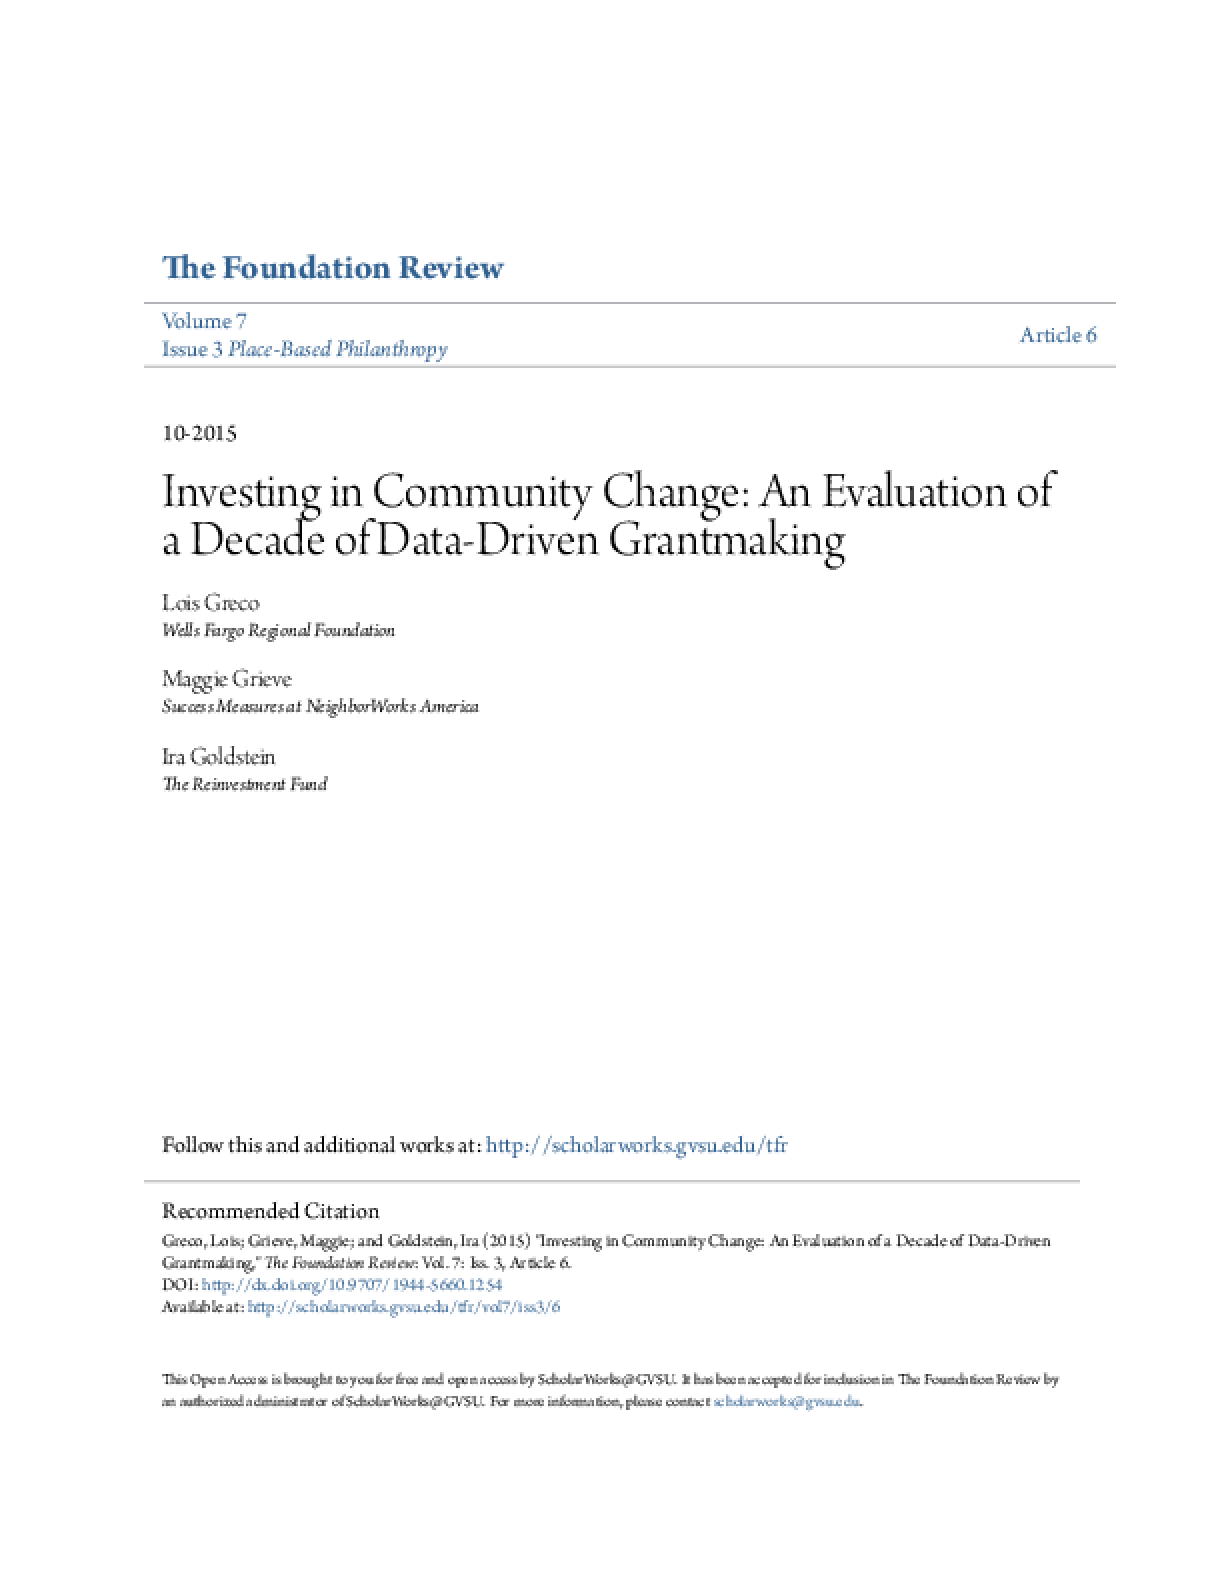 Investing in Community Change: An Evaluation of a Decade of Data-Driven Grantmaking